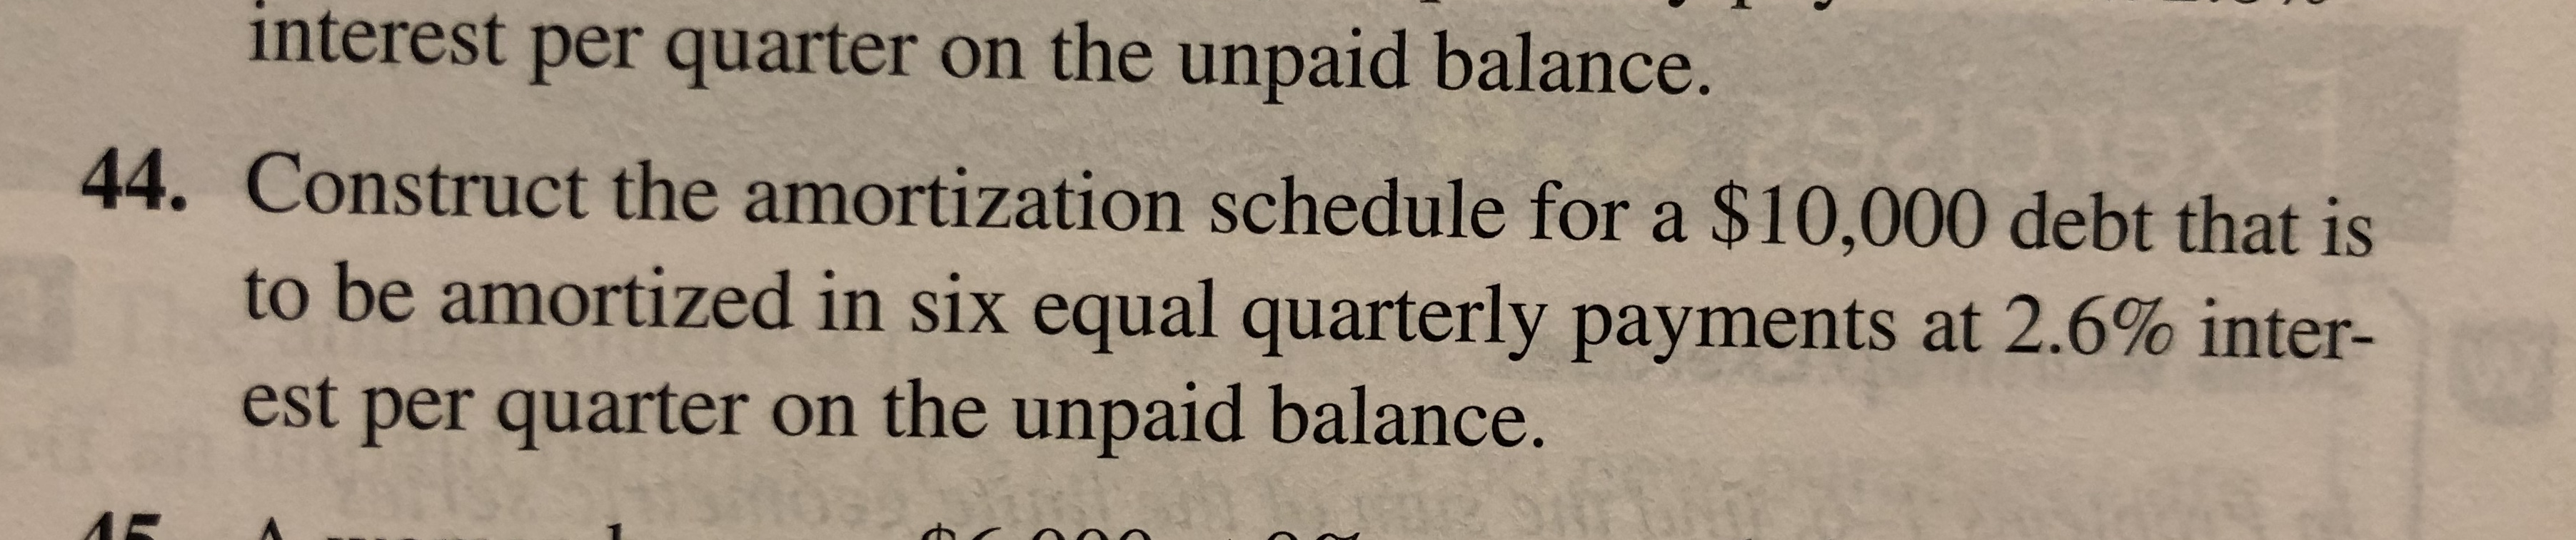 interest per quarter on the unpaid balance. 44. Construct the amortization schedule for a $10,000 debt that is to be amortized in six equal quarterly payments at 2.6% inter- est per quarter on the unpaid balance.